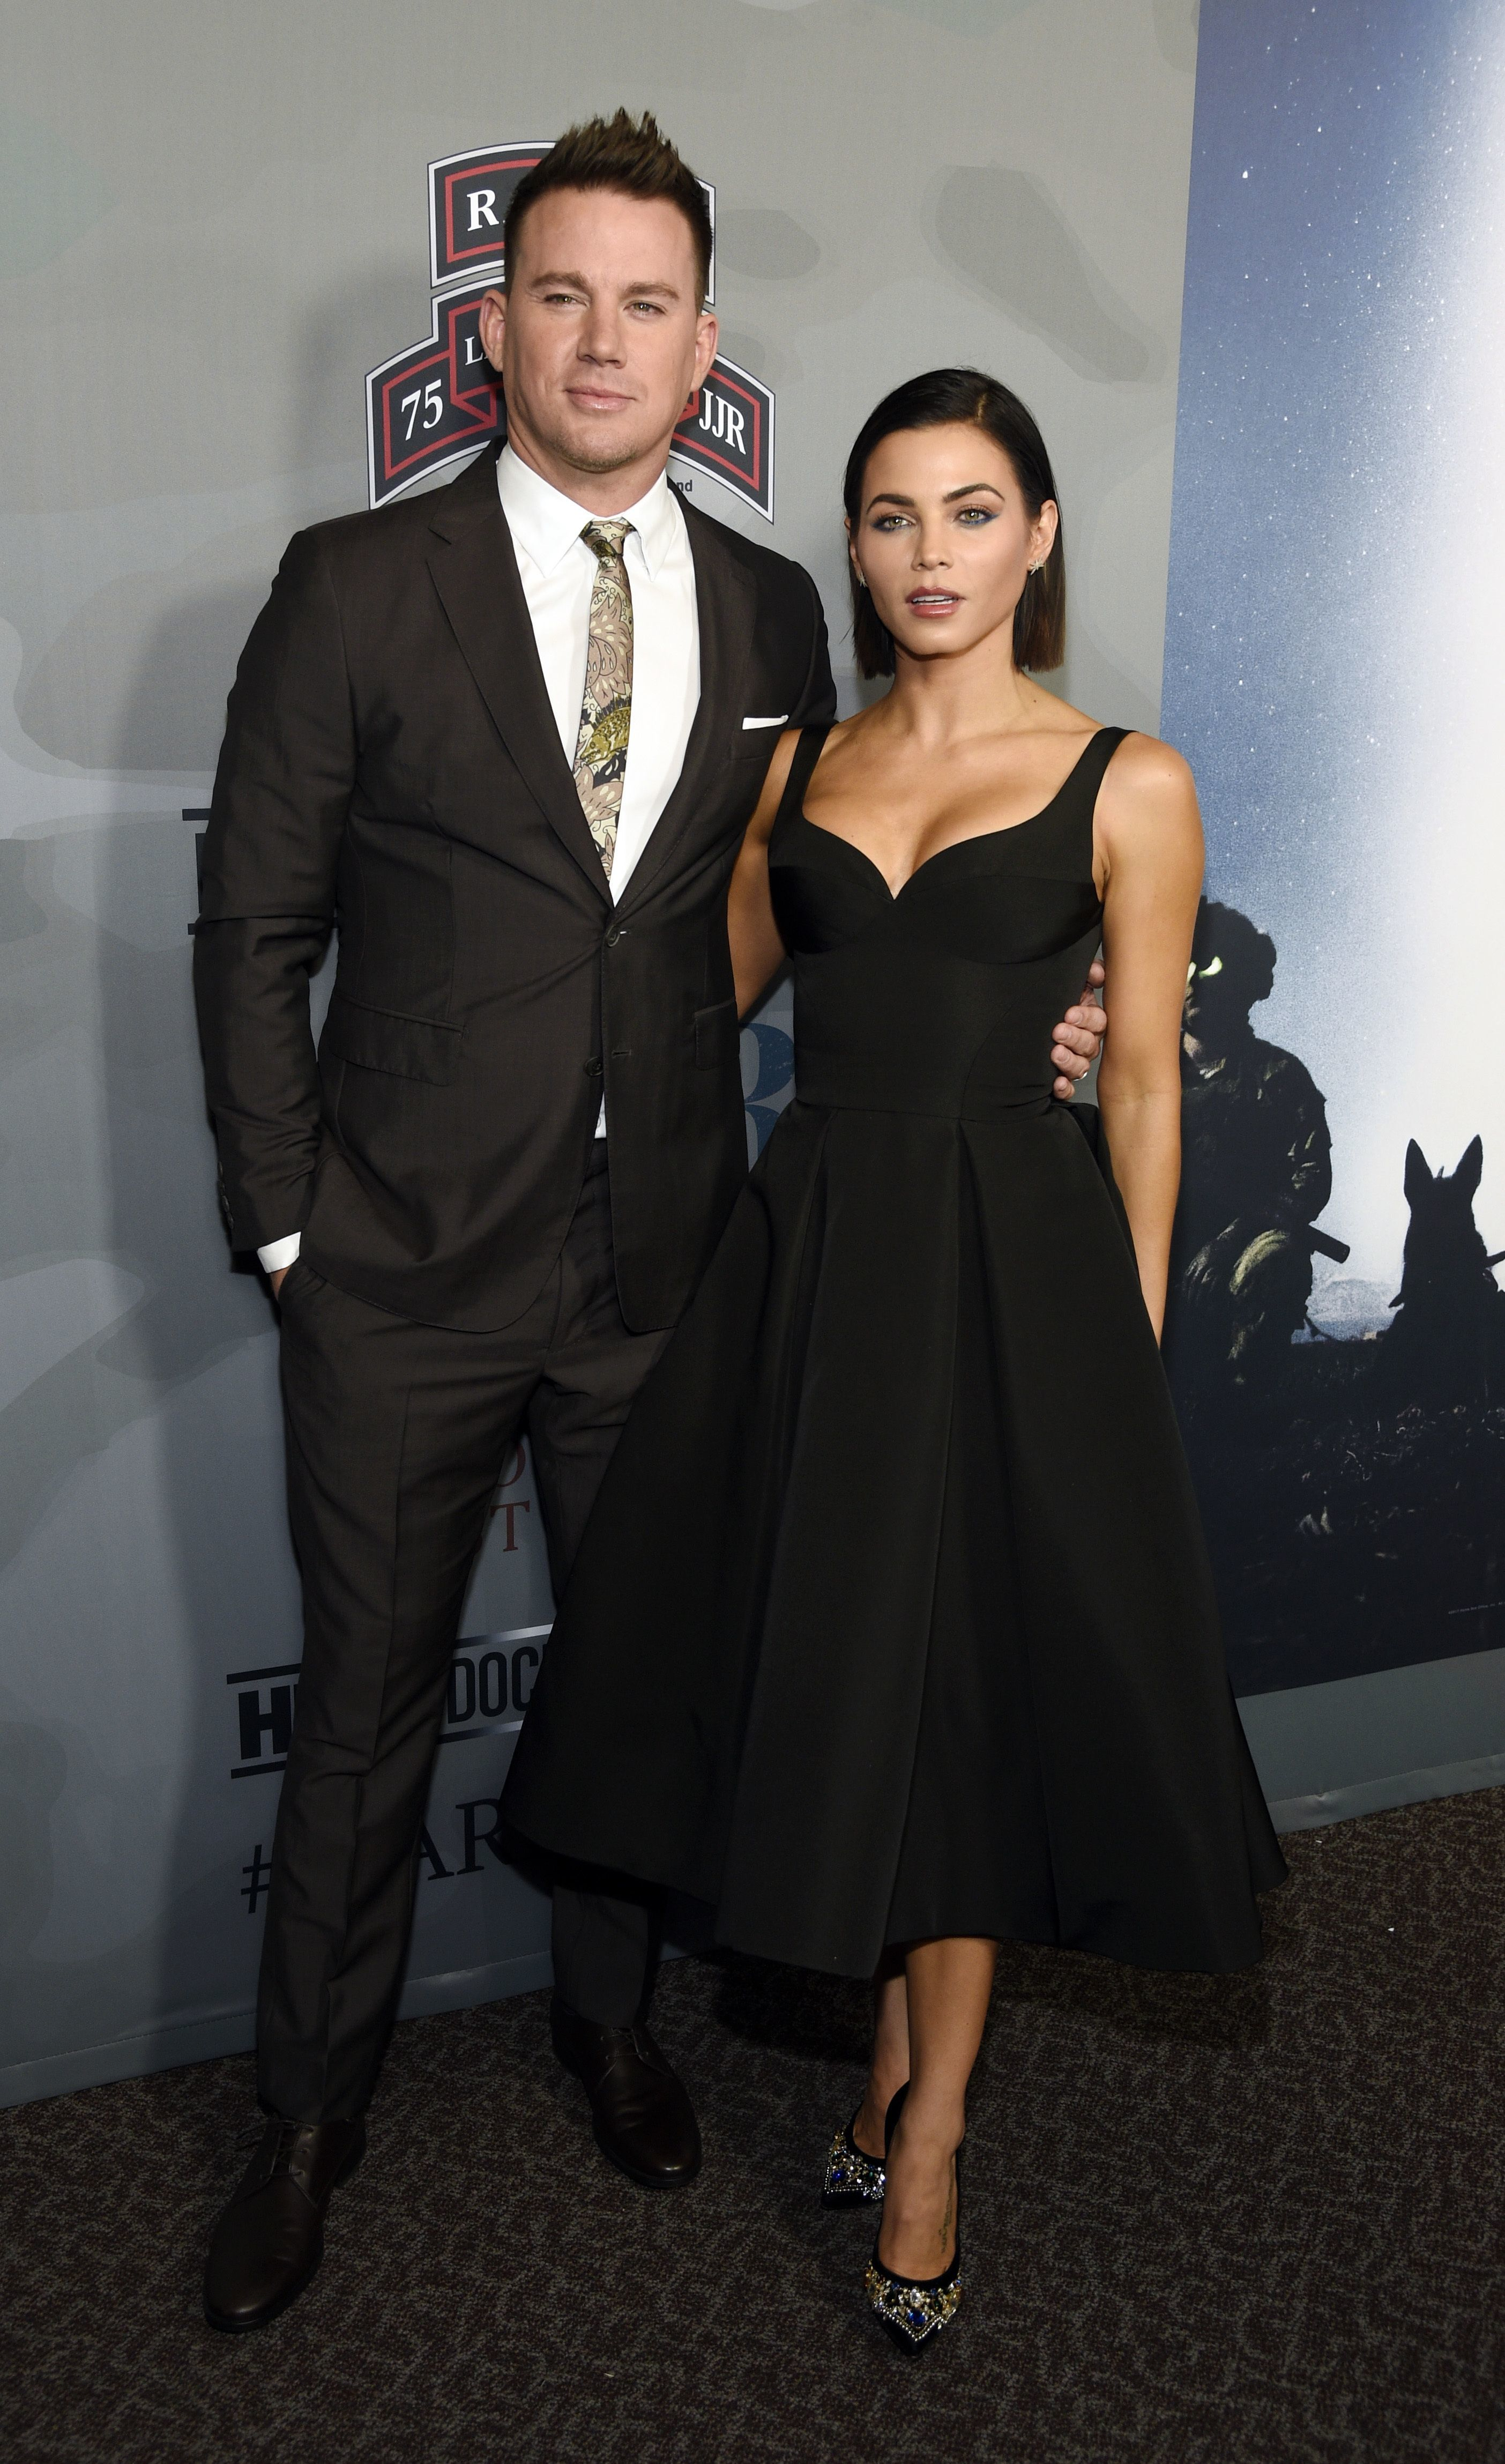 """Channing Tatum and Jenna Dewan Tatum attend the premiere of the film at the Directors Guild of America for """"War Dog: A Soldier's Best Friend"""" in Los Angeles on Nov. 6, 2017."""